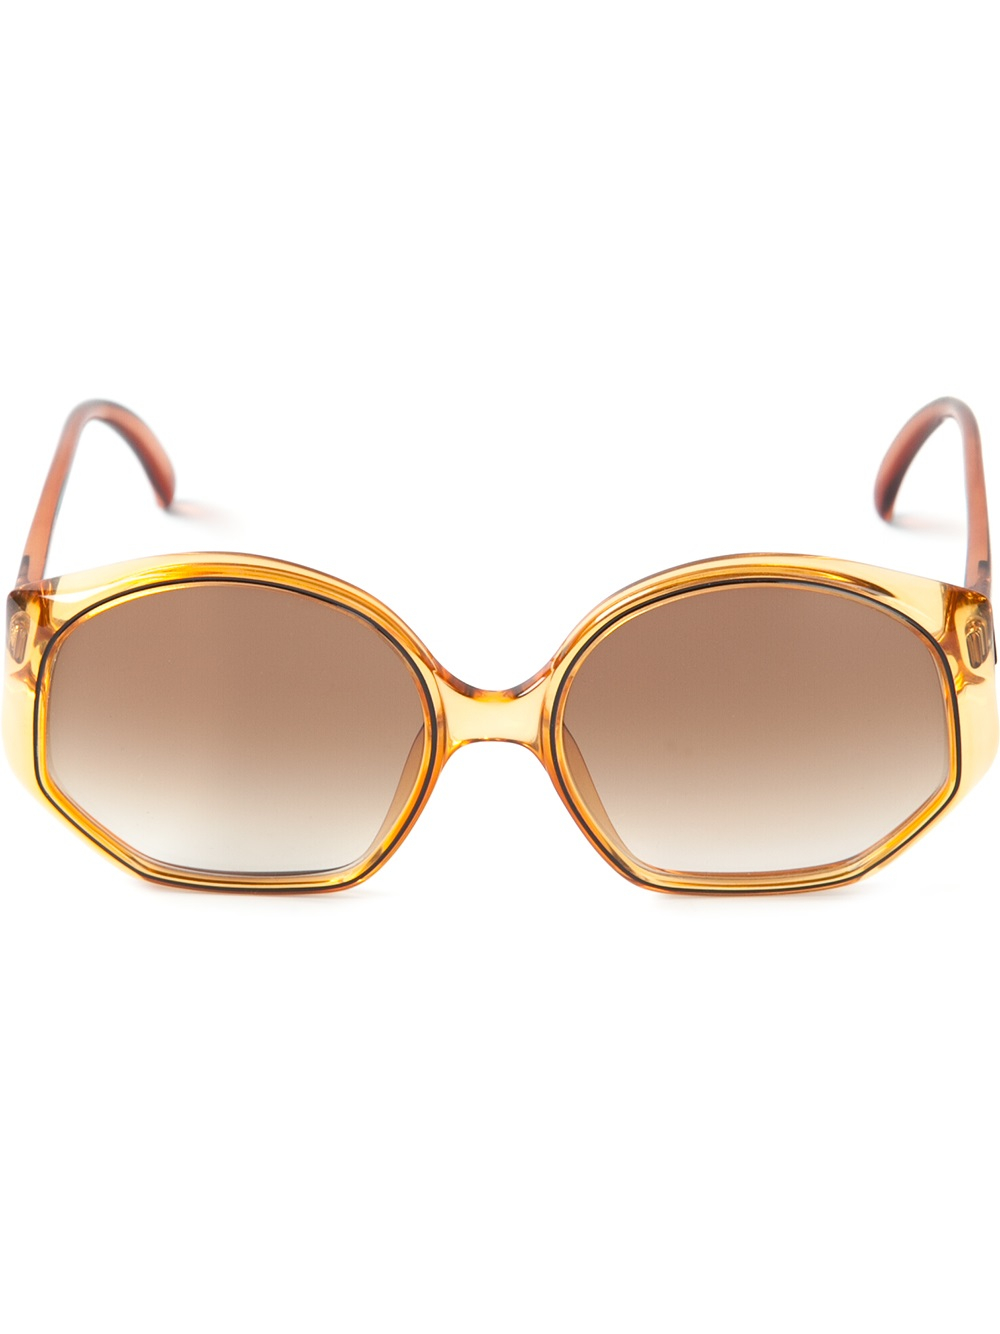 Dior Glasses Frame 2014 : Dior Round Frame Sunglasses in Gold (brown) Lyst